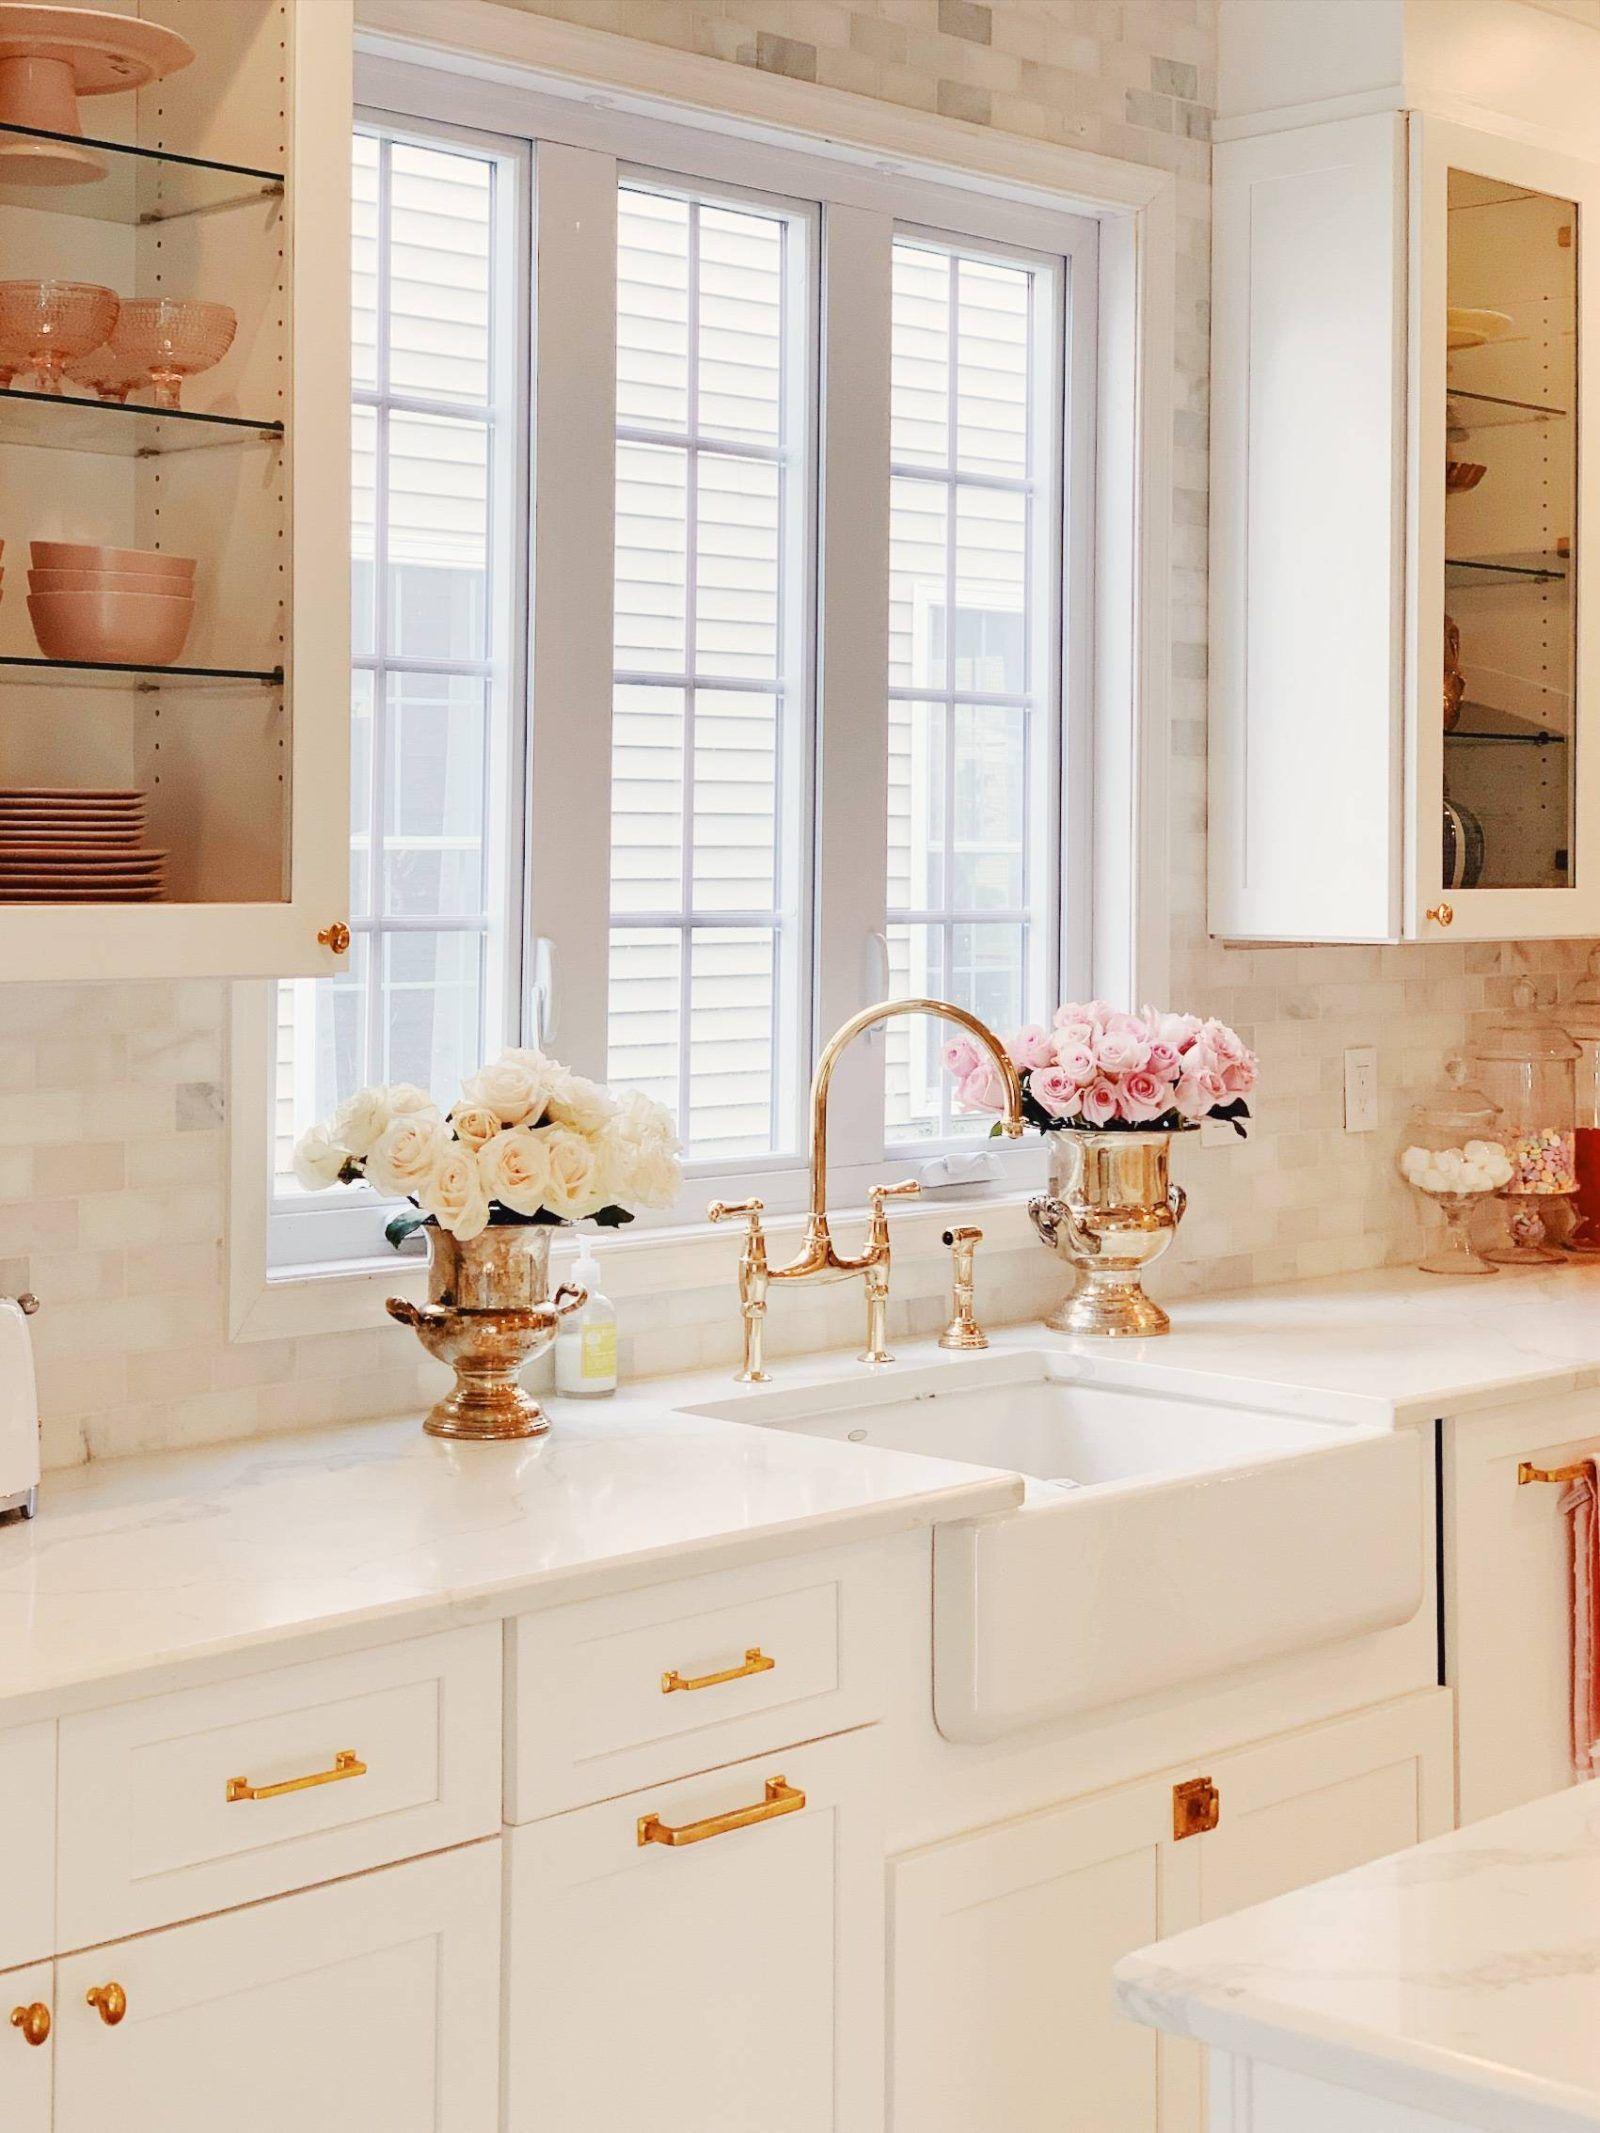 Mullion Cabinet Doors: How to Add Overlays to a Glass ...